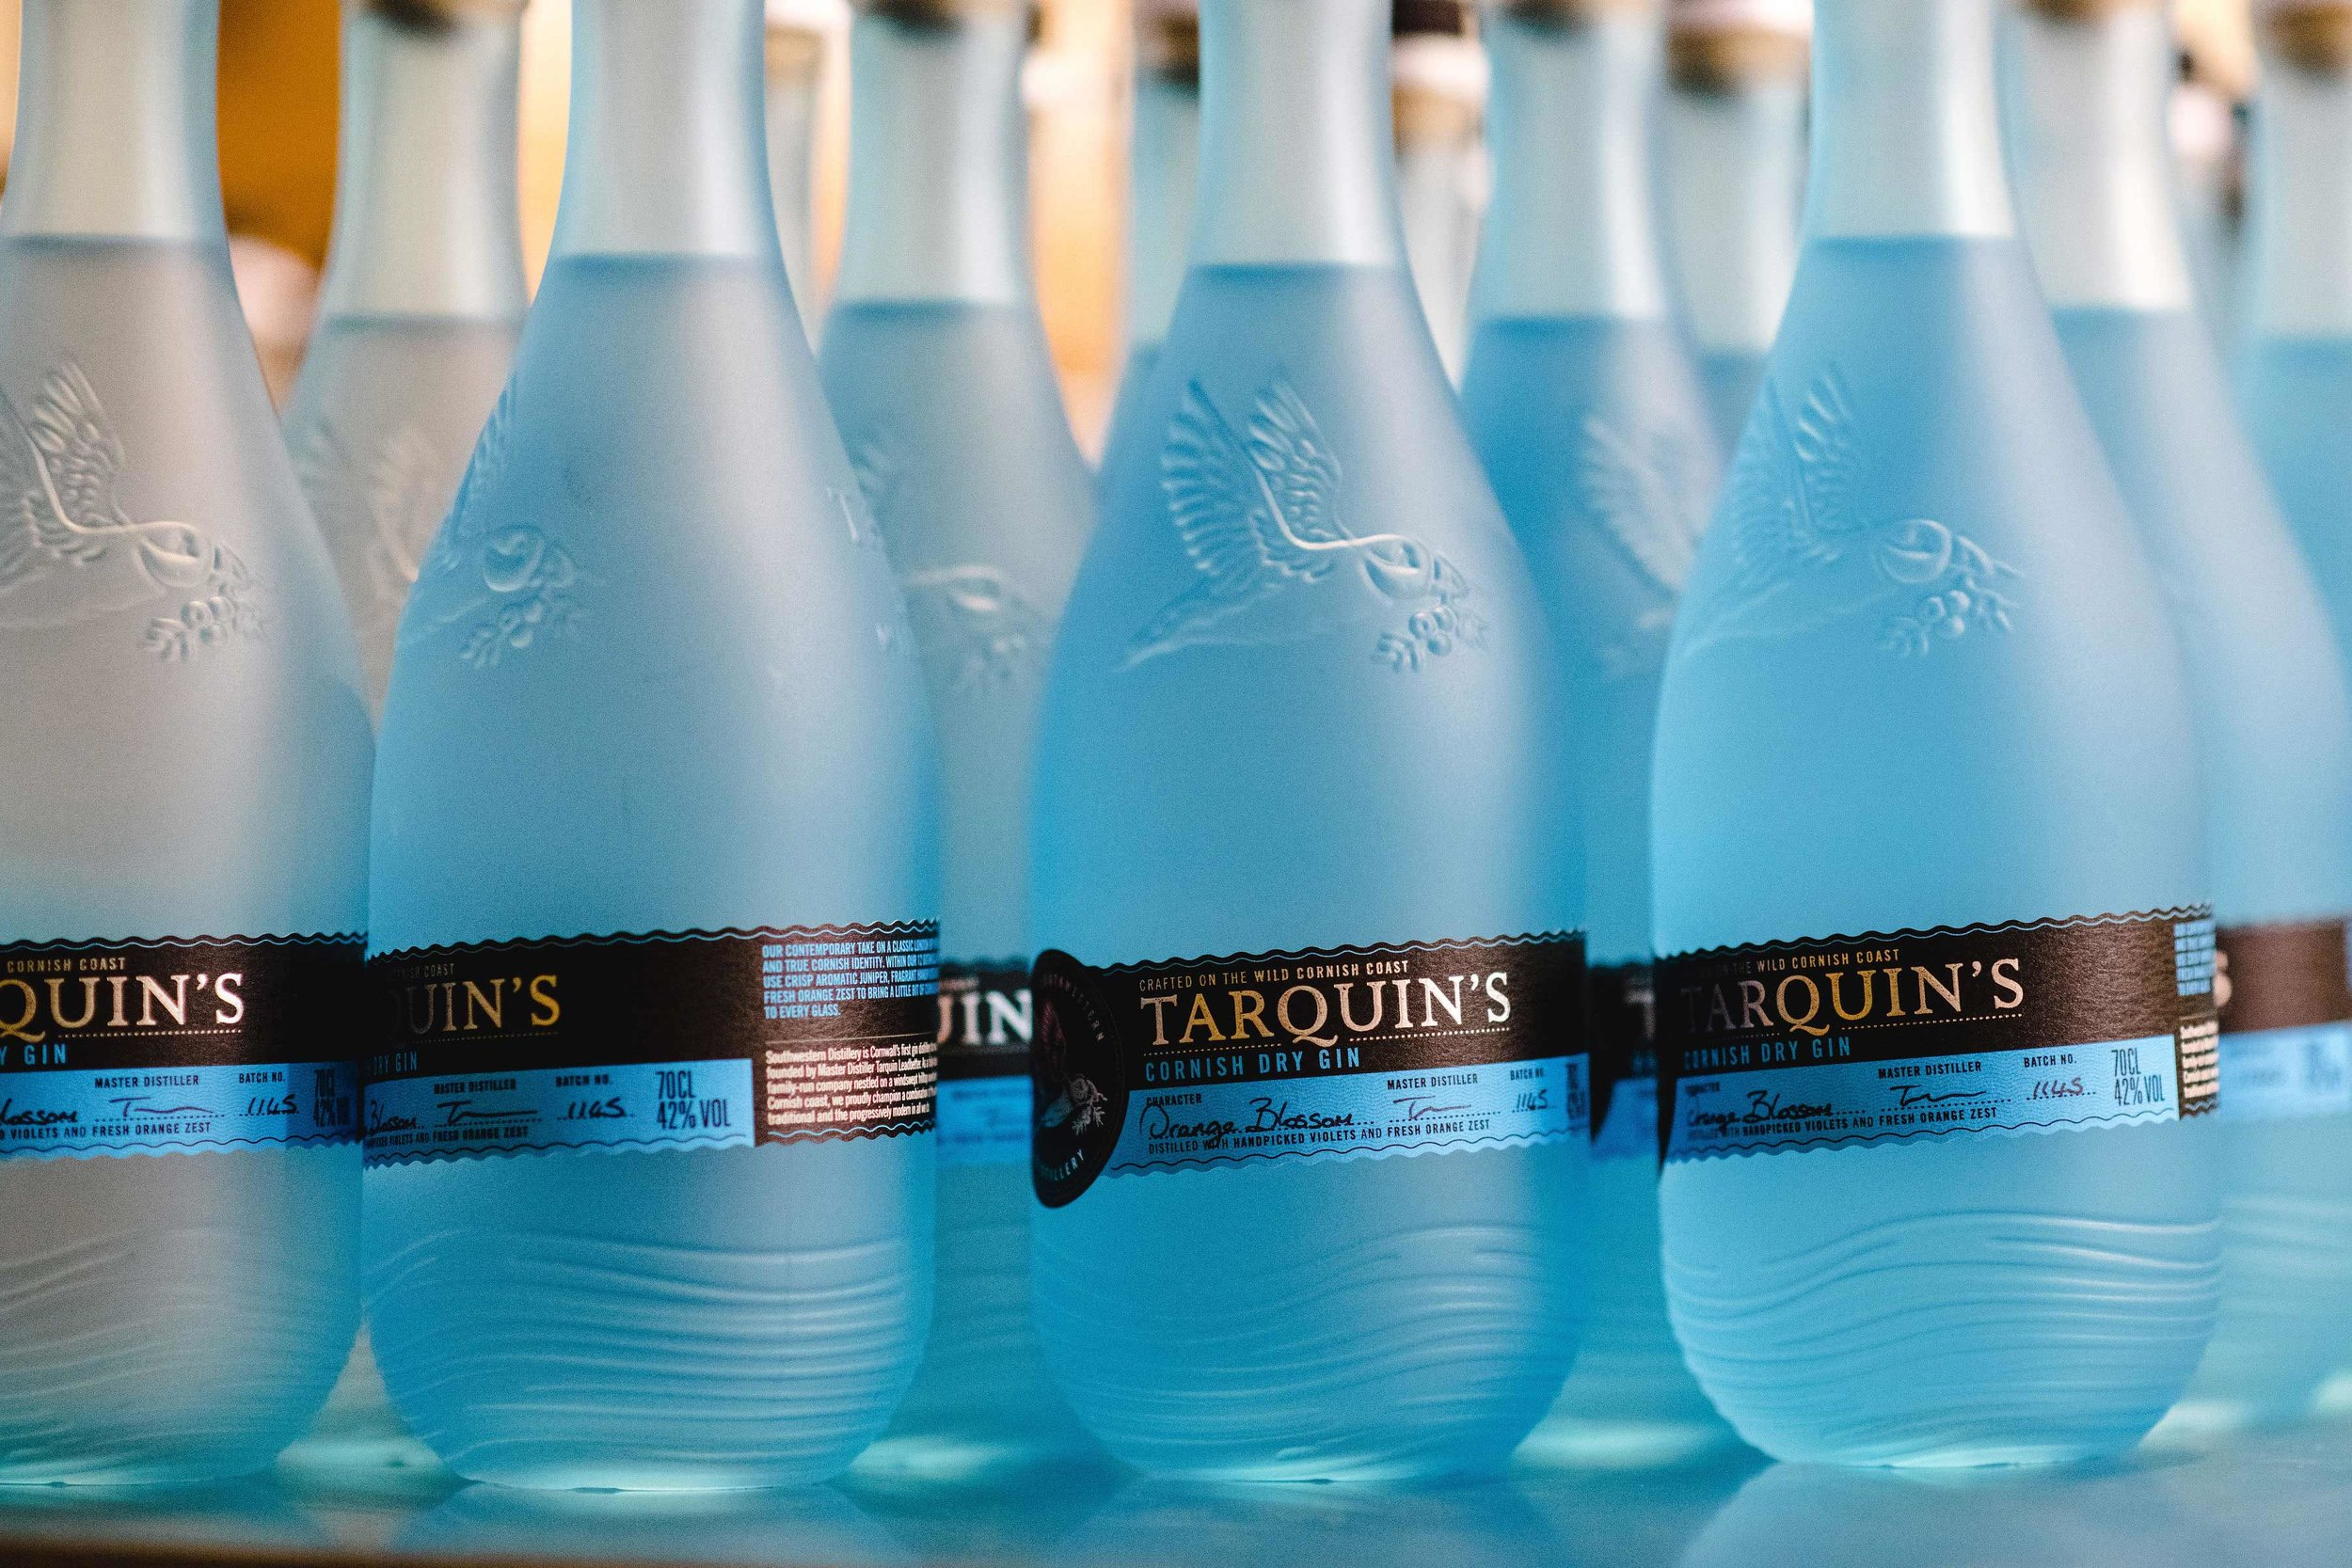 New 'Sea-Glass' Bottle Design for Tarquin's Cornish Gin by Buddy